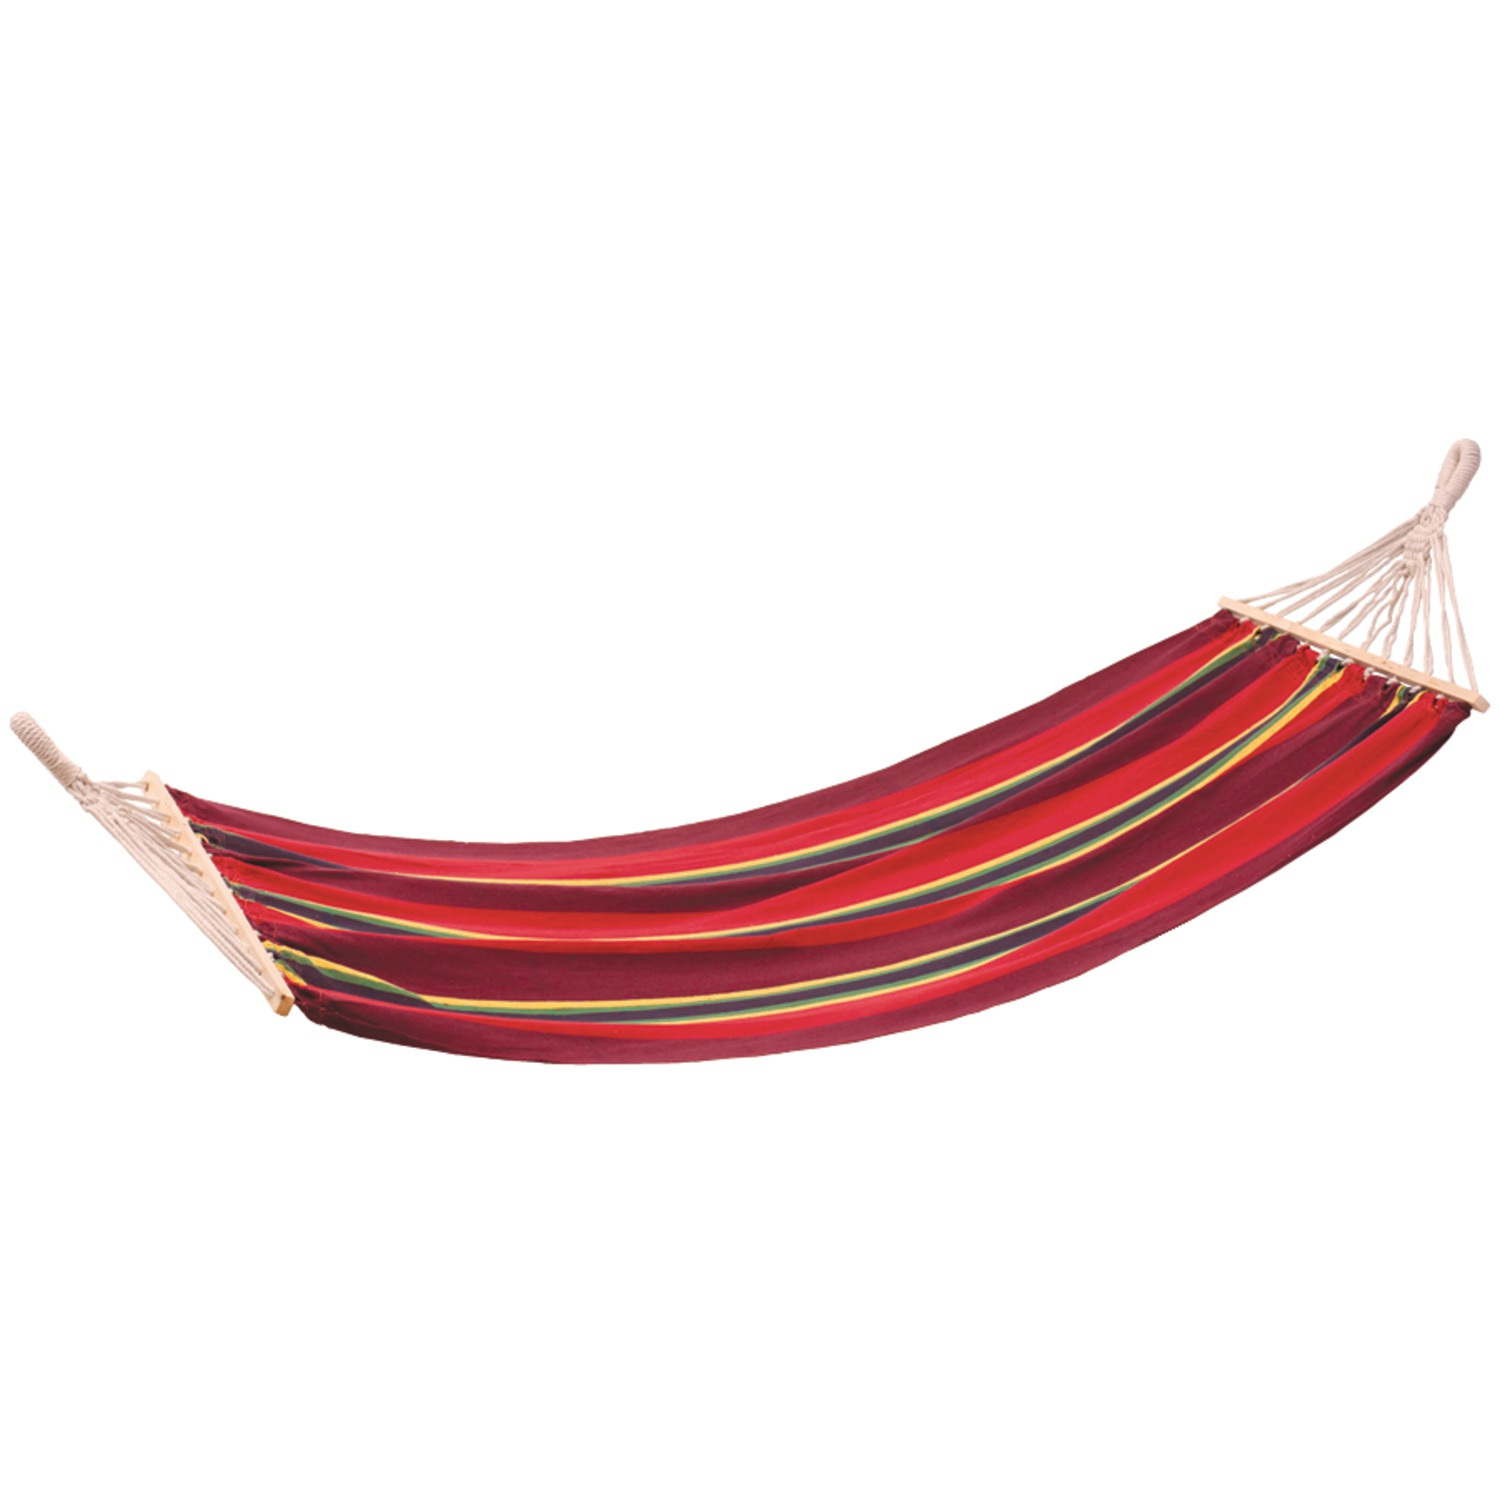 Bahamas Cotton Hammock (Caribbean) by Stansport